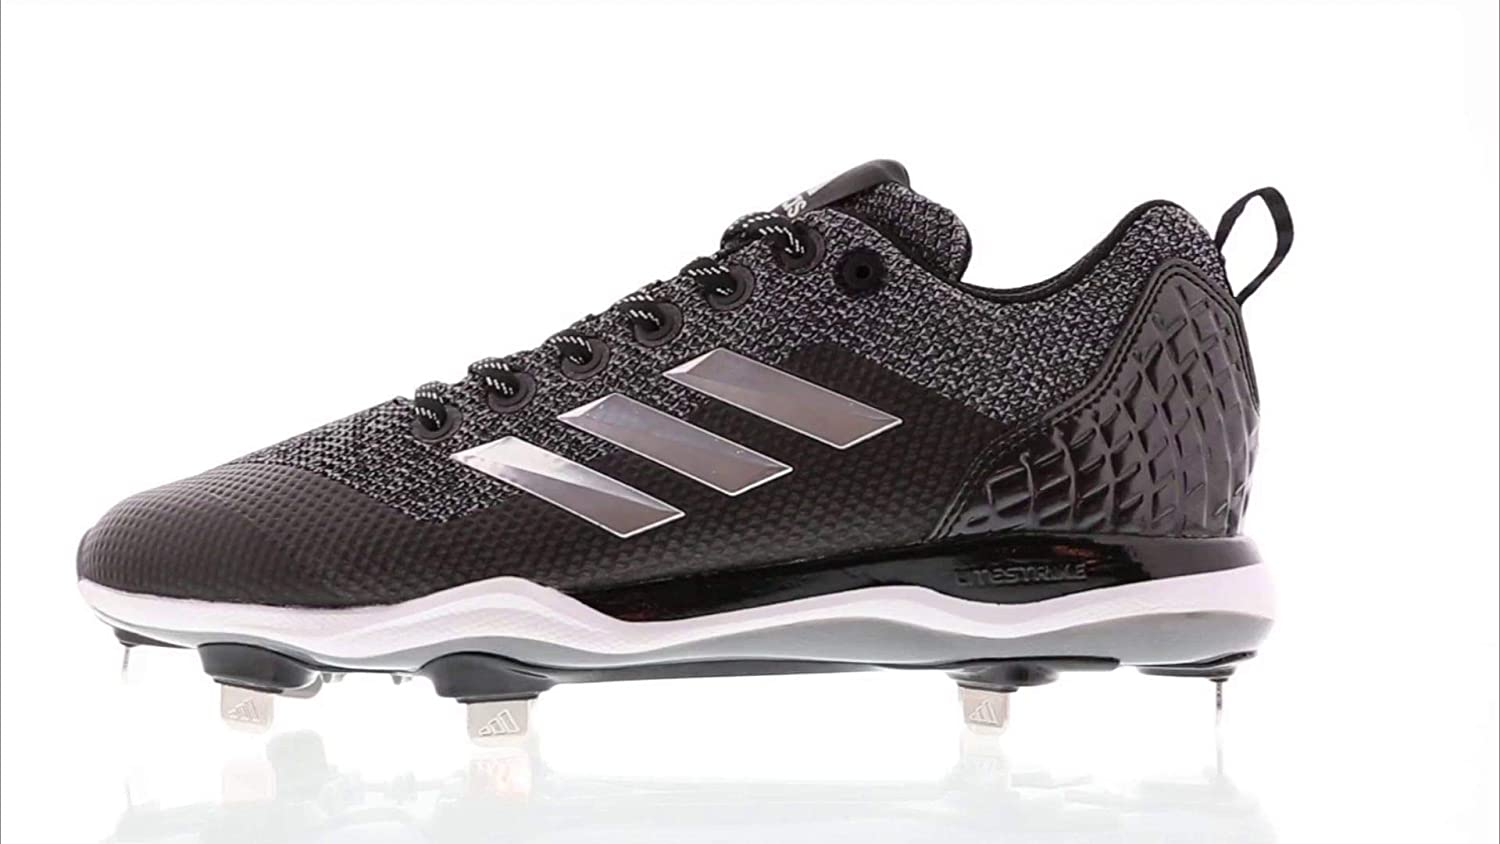 Adidas Herren PowerAlley 5 5 5 Metall Baseball Klampen 92a239